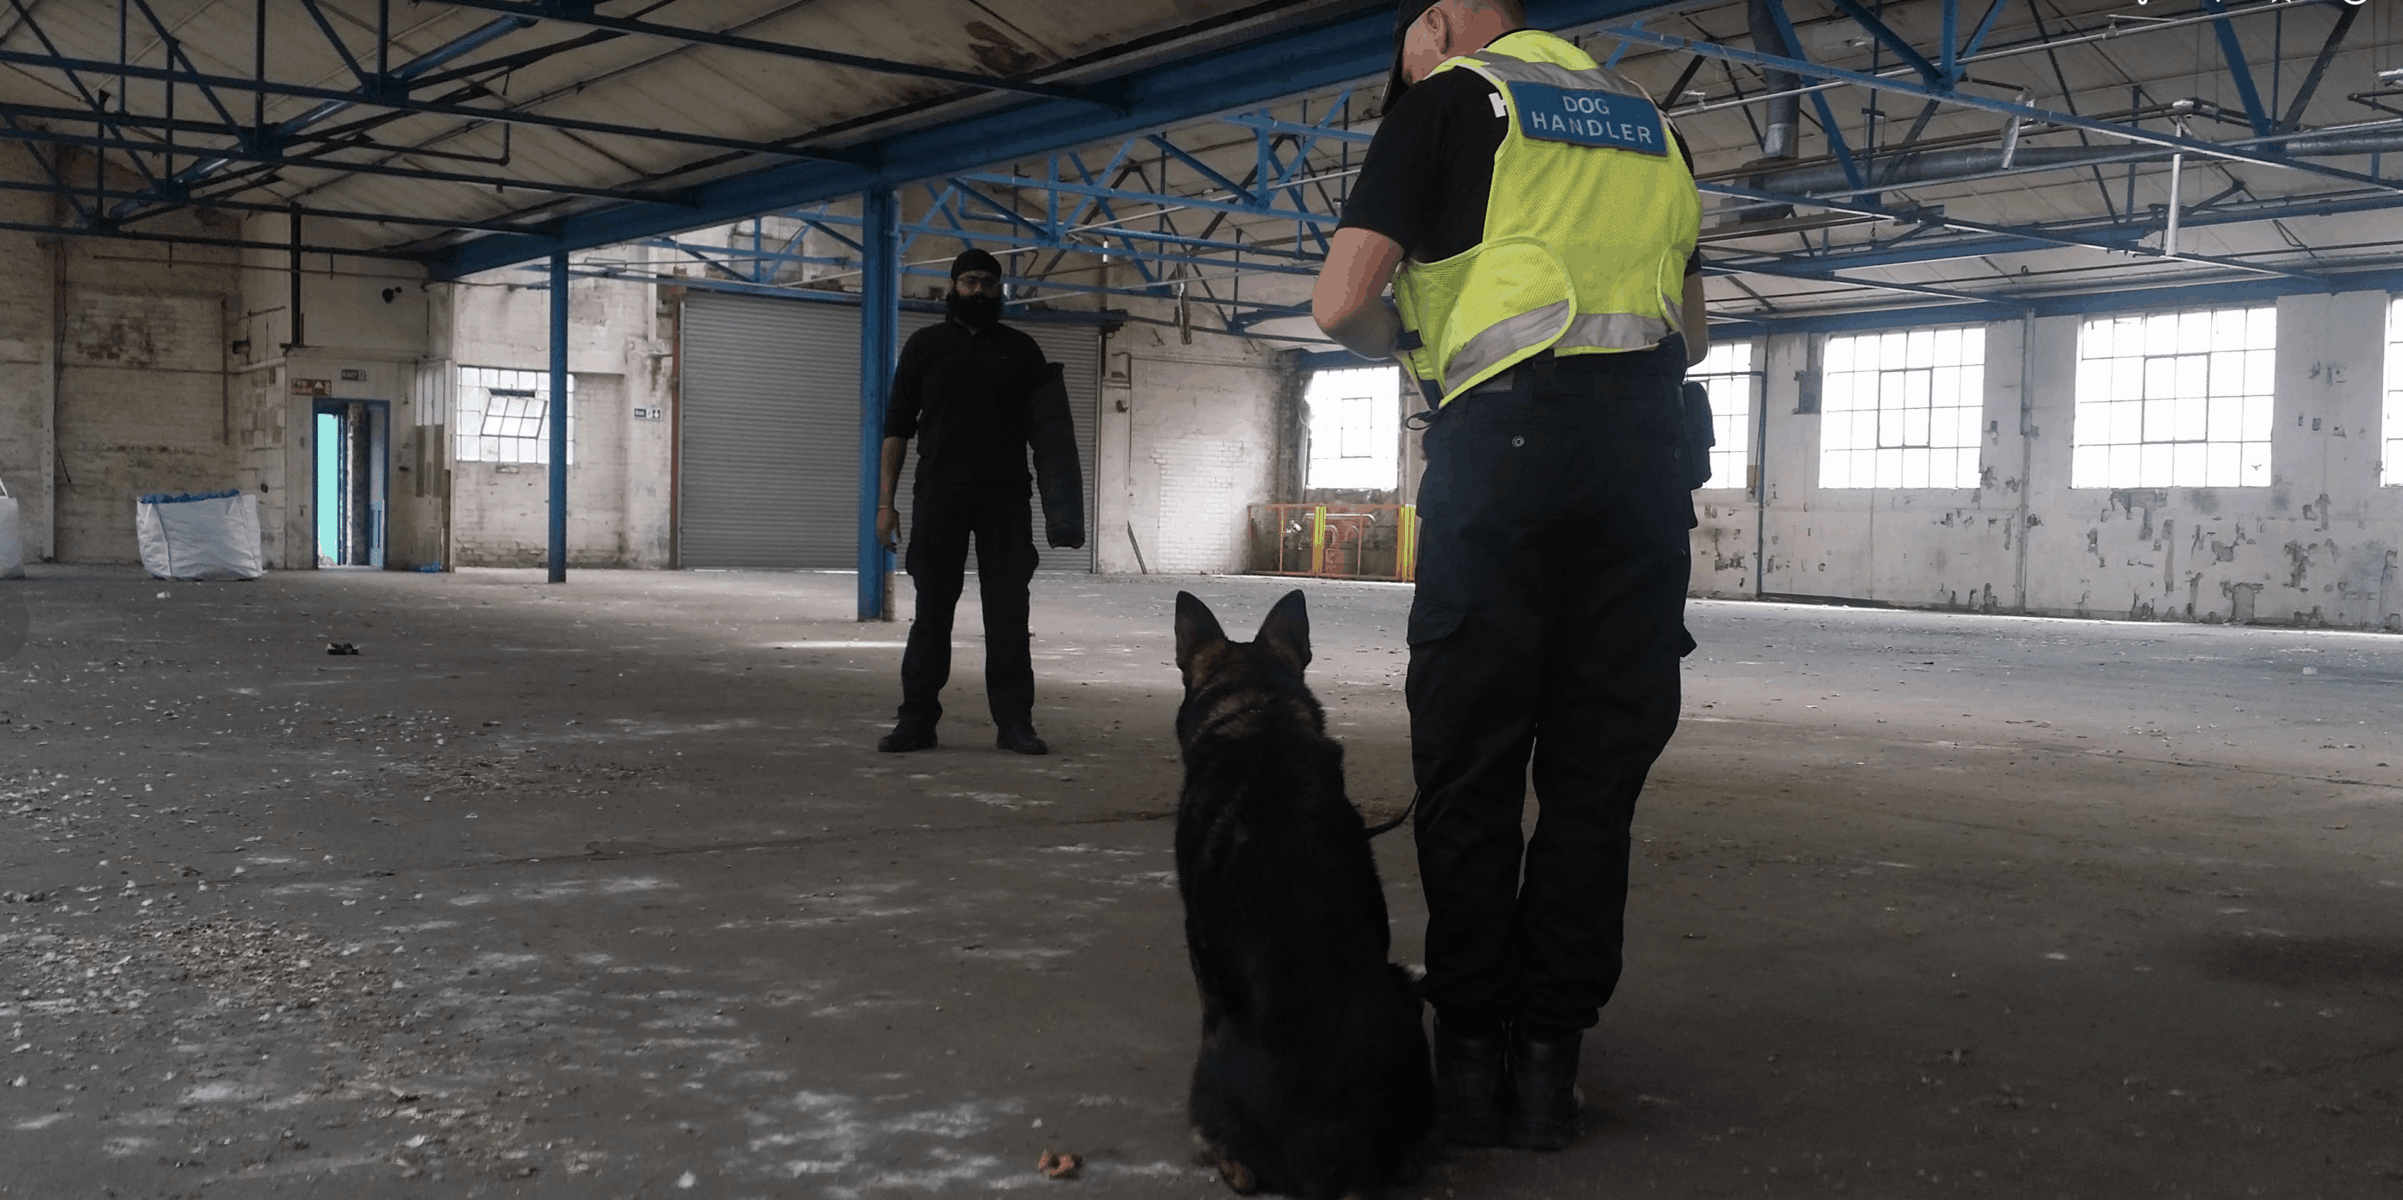 Security dogs london